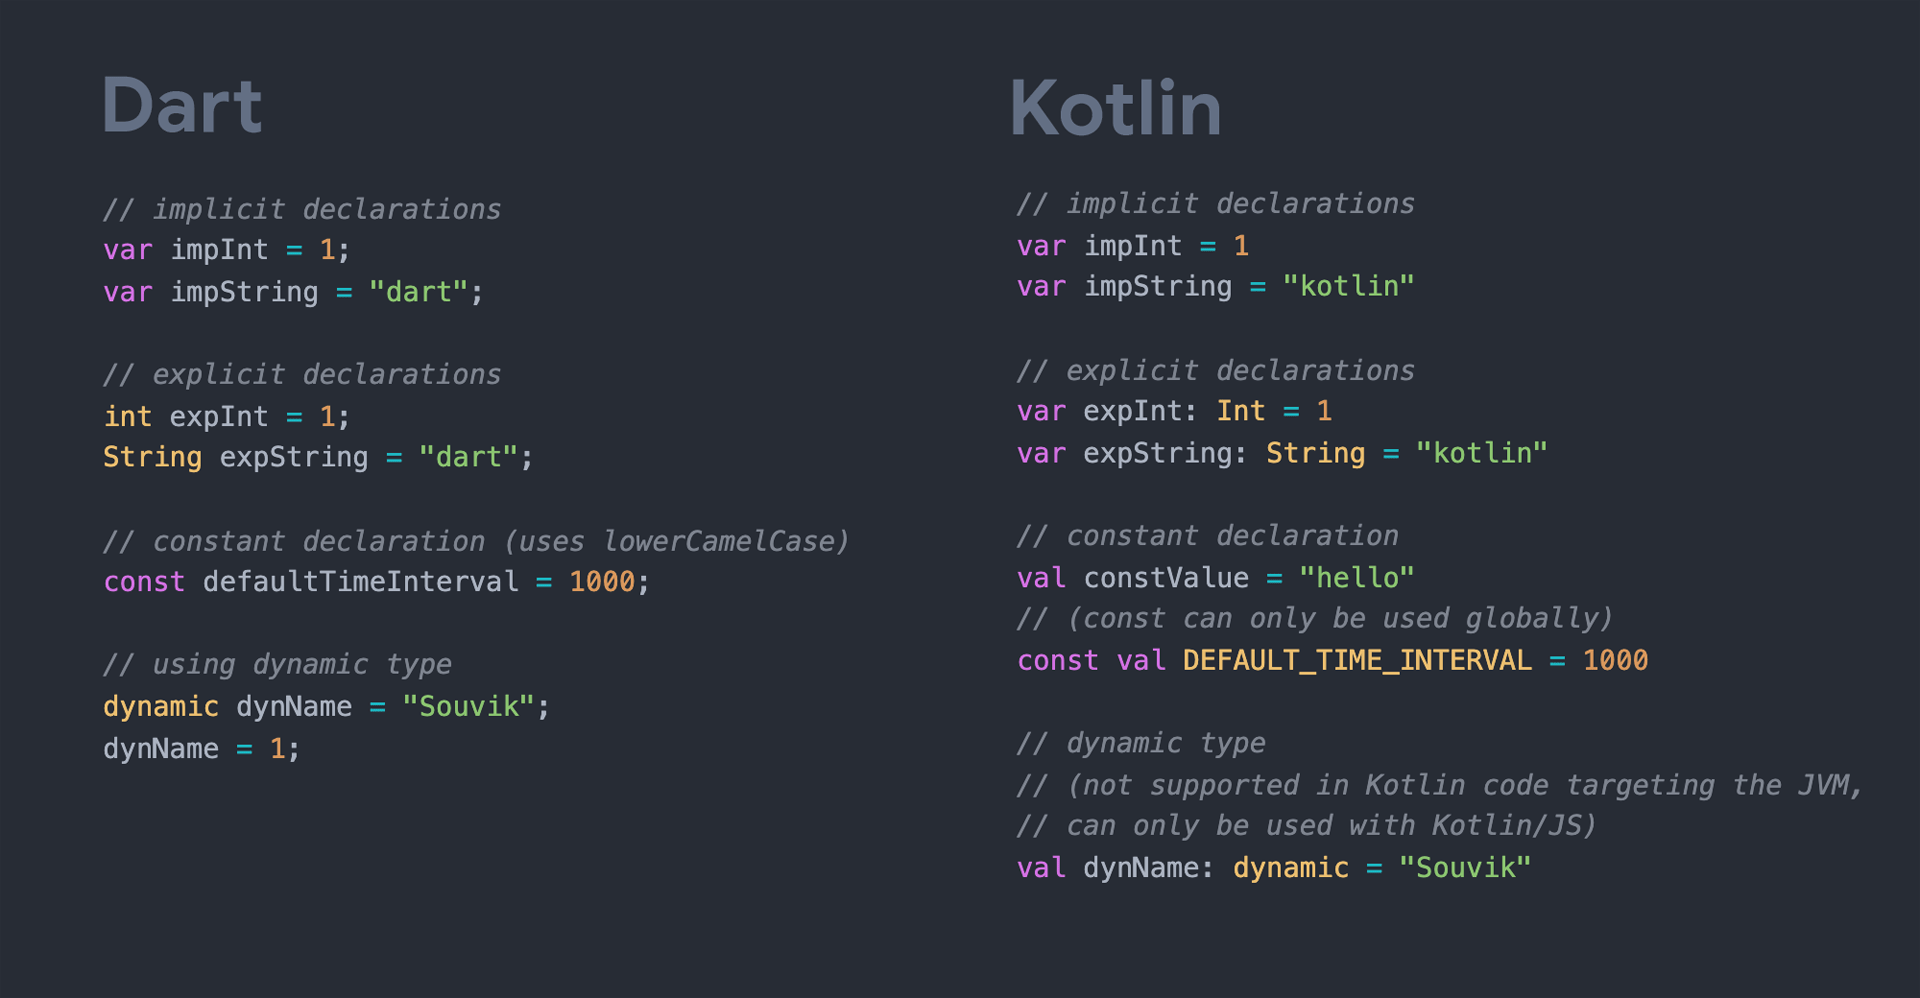 Dart vs Kotlin: Variables & constants